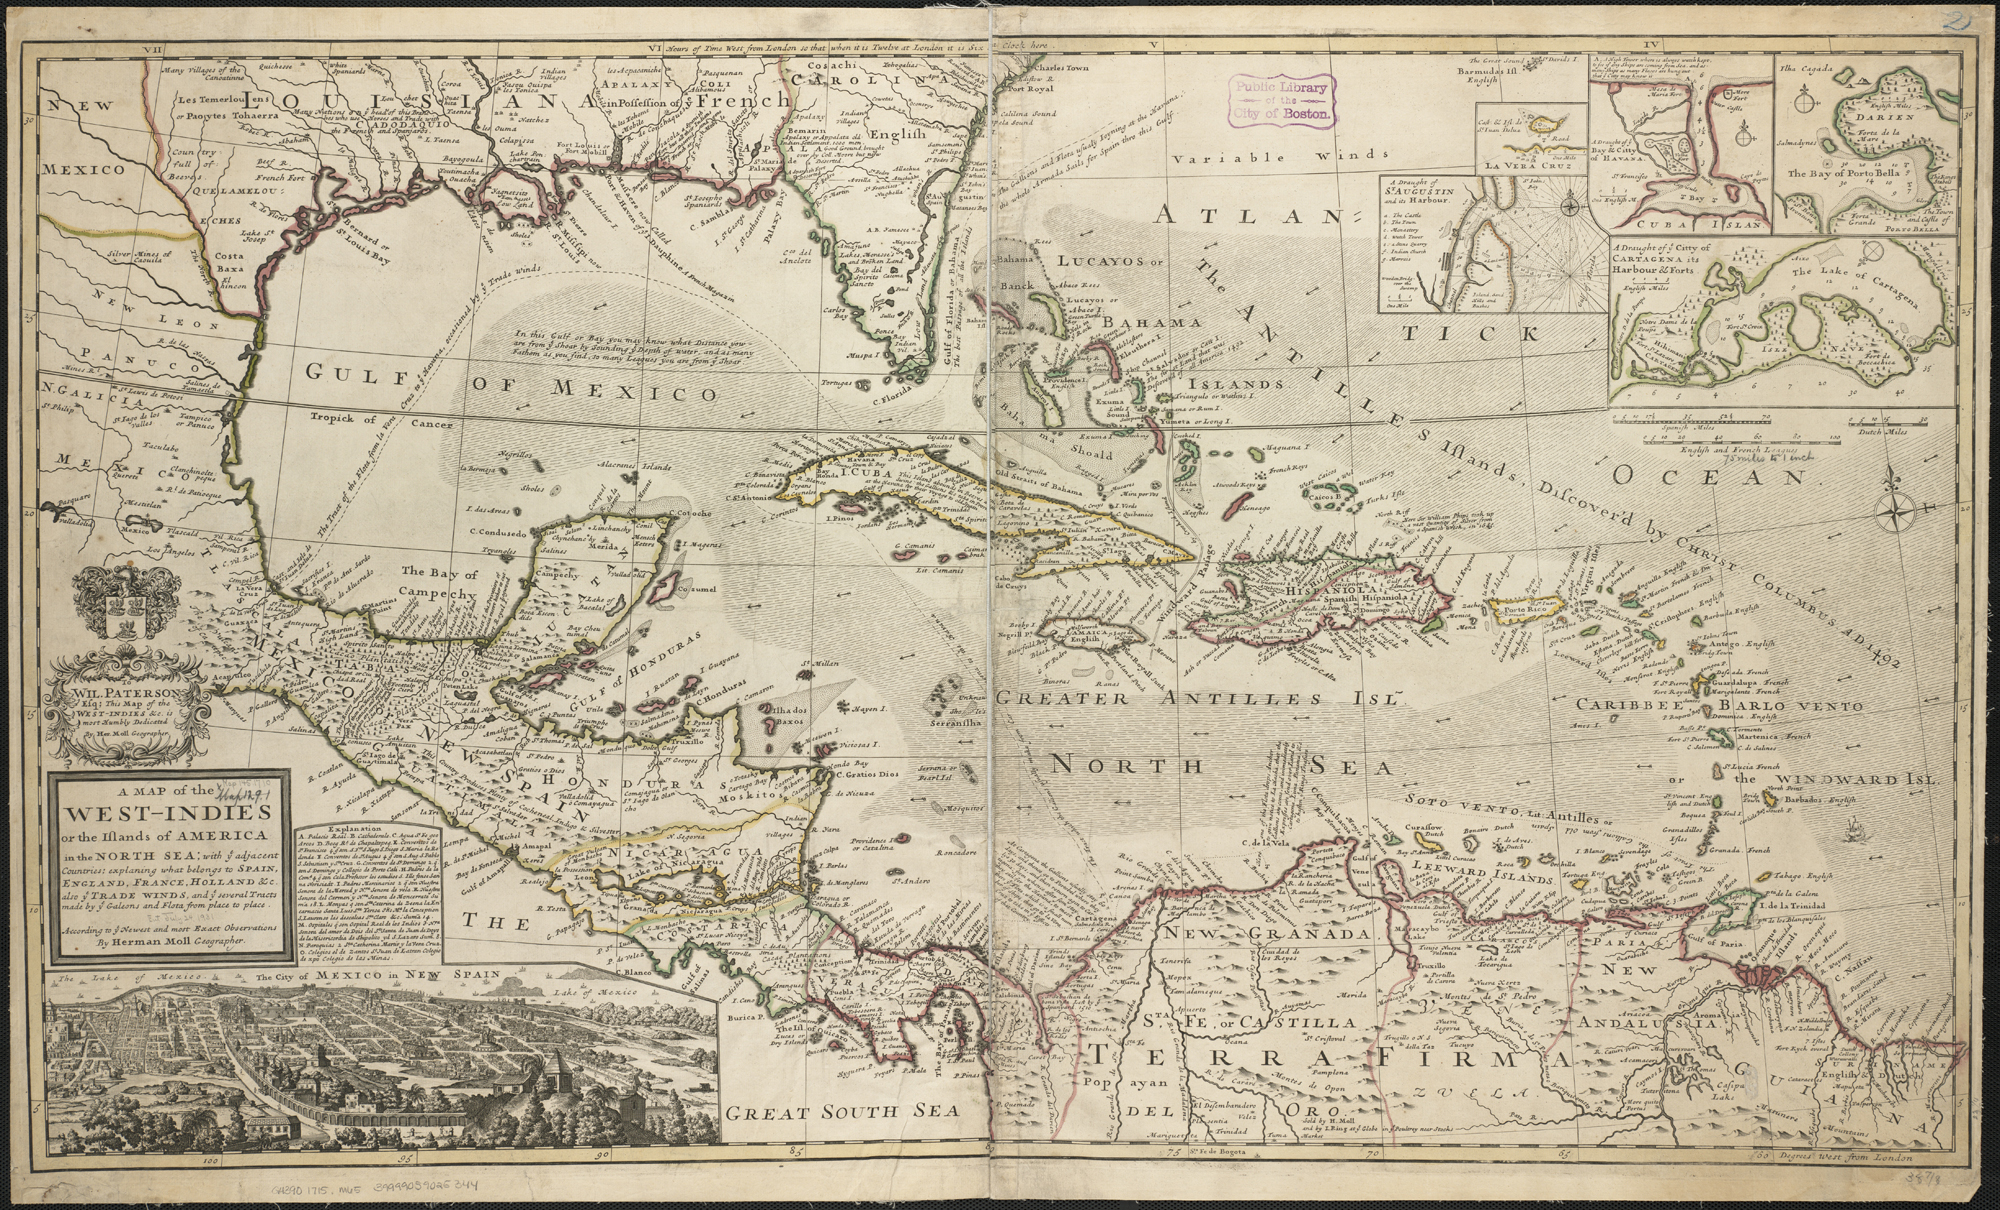 Map Of France England And Spain.File A Map Of The West Indies Or The Islands Of America In The North